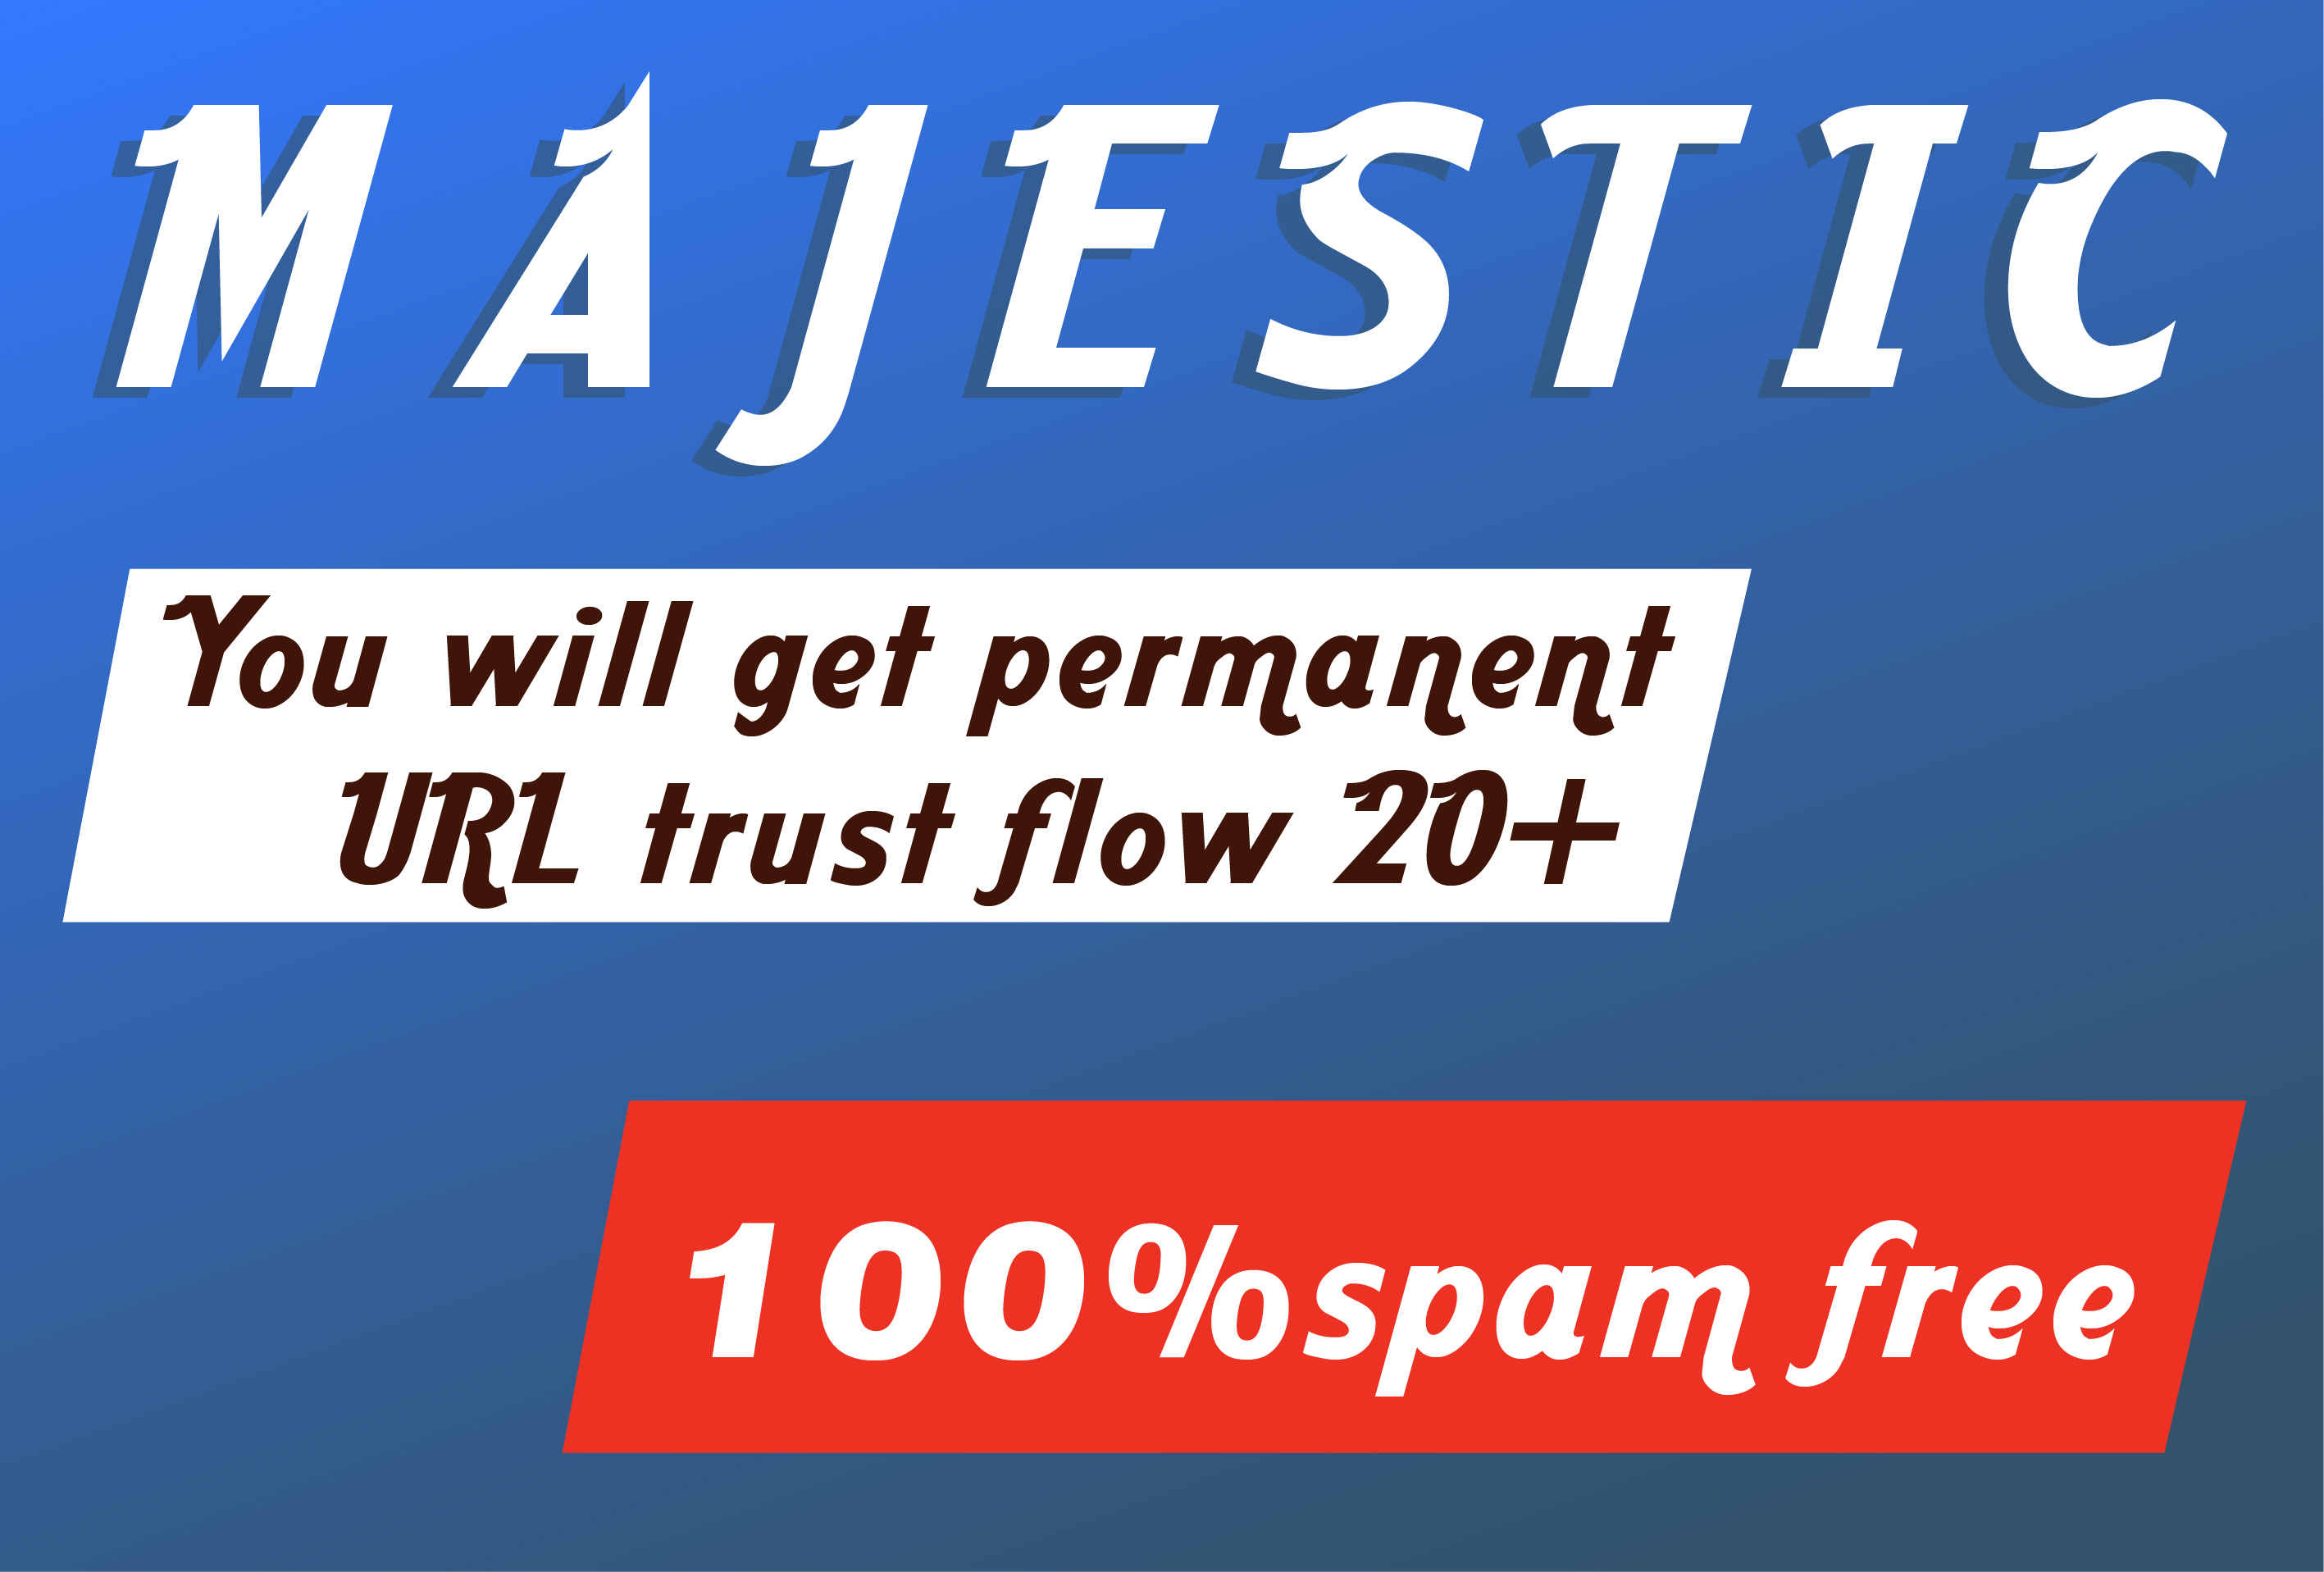 Do Help You To Increase Your Website Trust Flow Up To 20 Plus